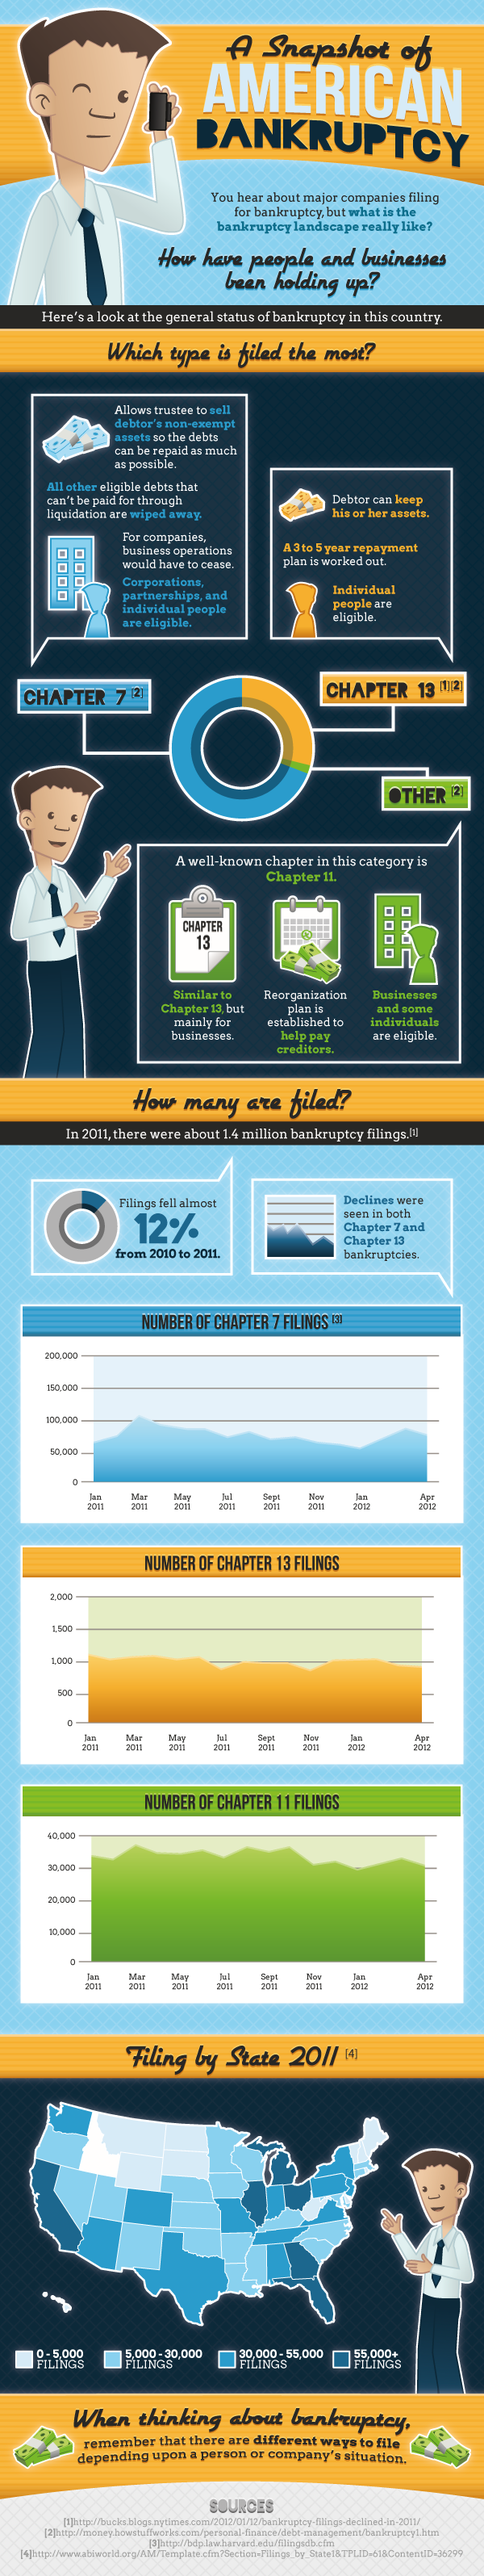 American Bankruptcy Filings-infographic